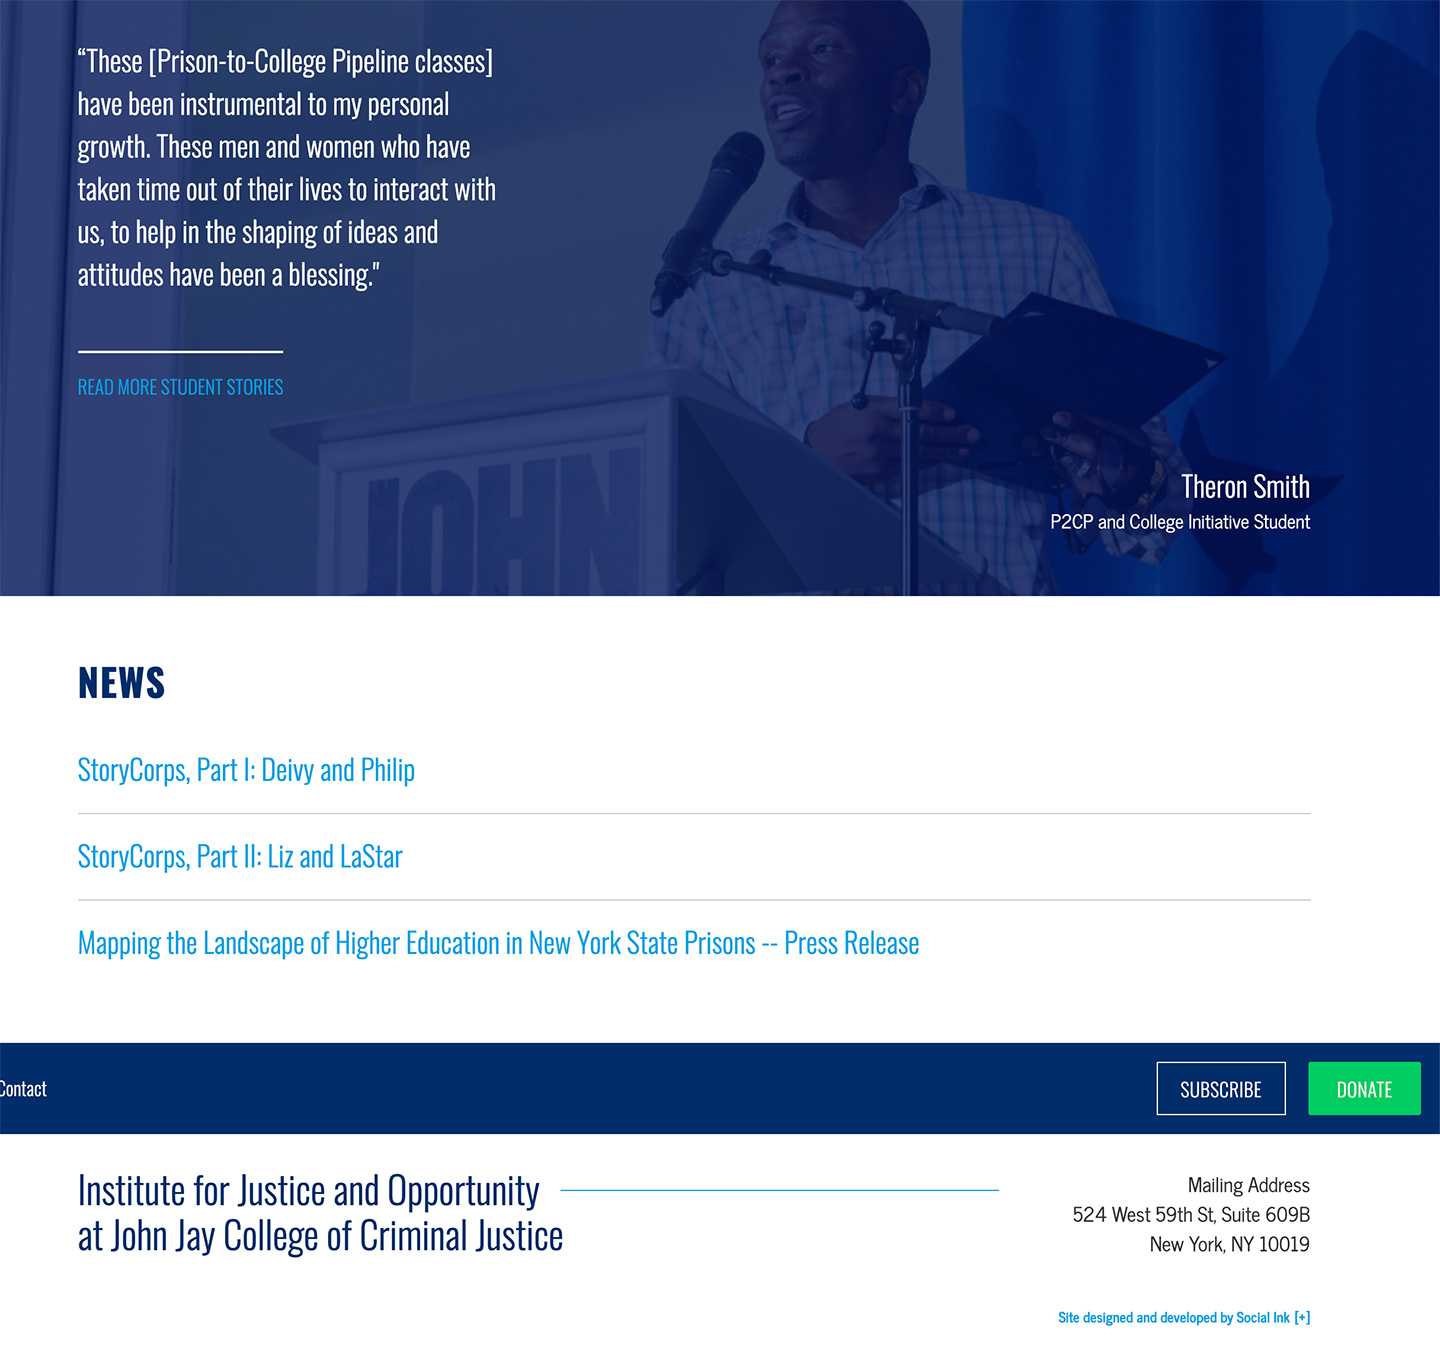 Institute for Justice and Opportunity (CUNY John Jay)